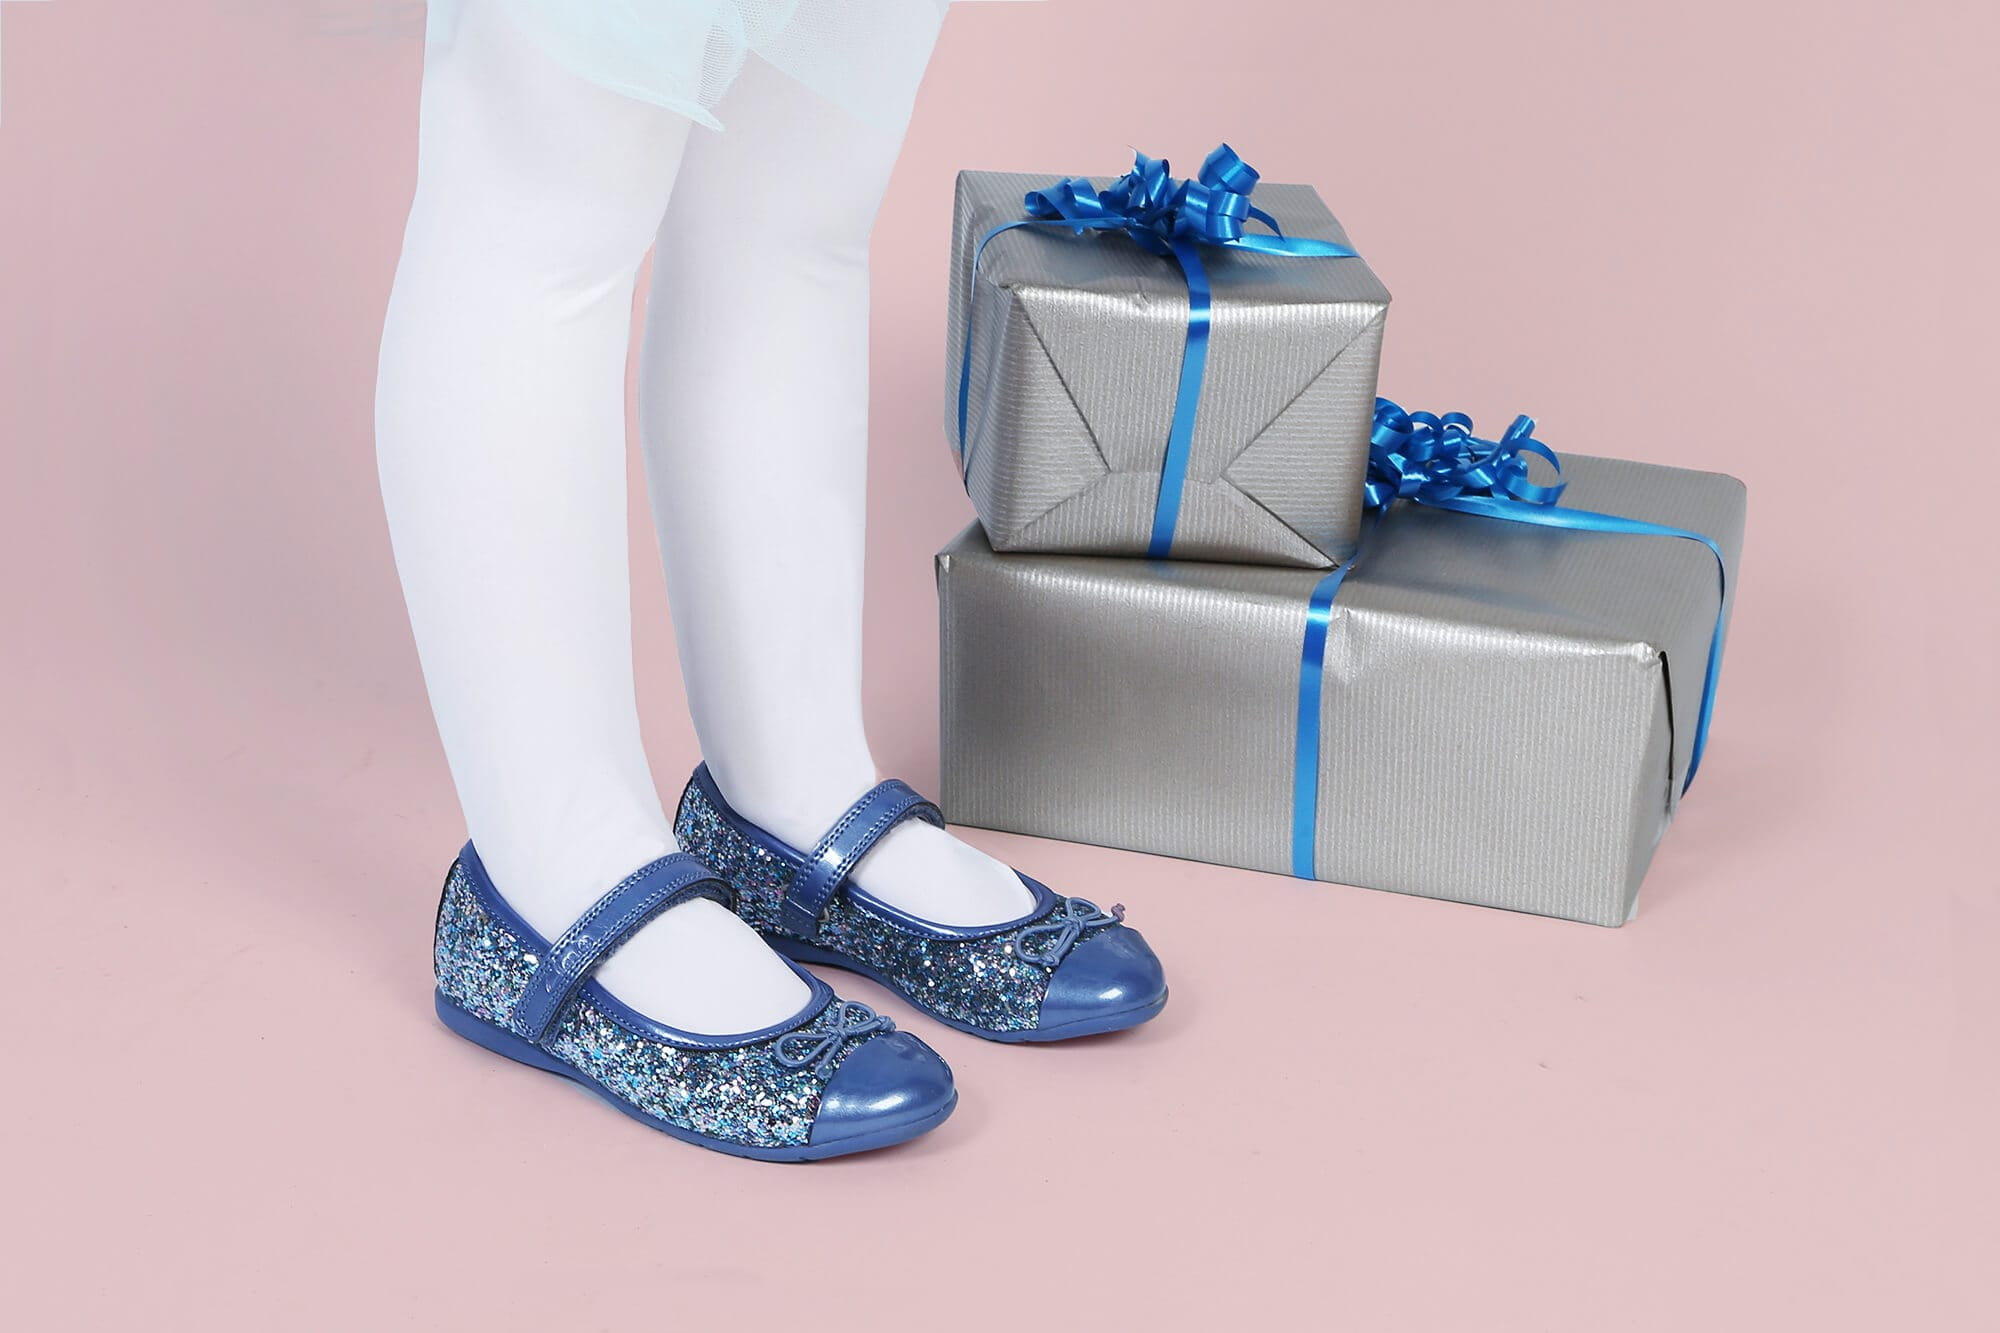 Girls Glittery Party Shoes Home Blog 12 Jeans Girl In A Fabulous Frozen Blue Hue The Clarks Dance Zing Are Sure To Be Festive Favourite Though With Choice Of Five Colours It Will Hard